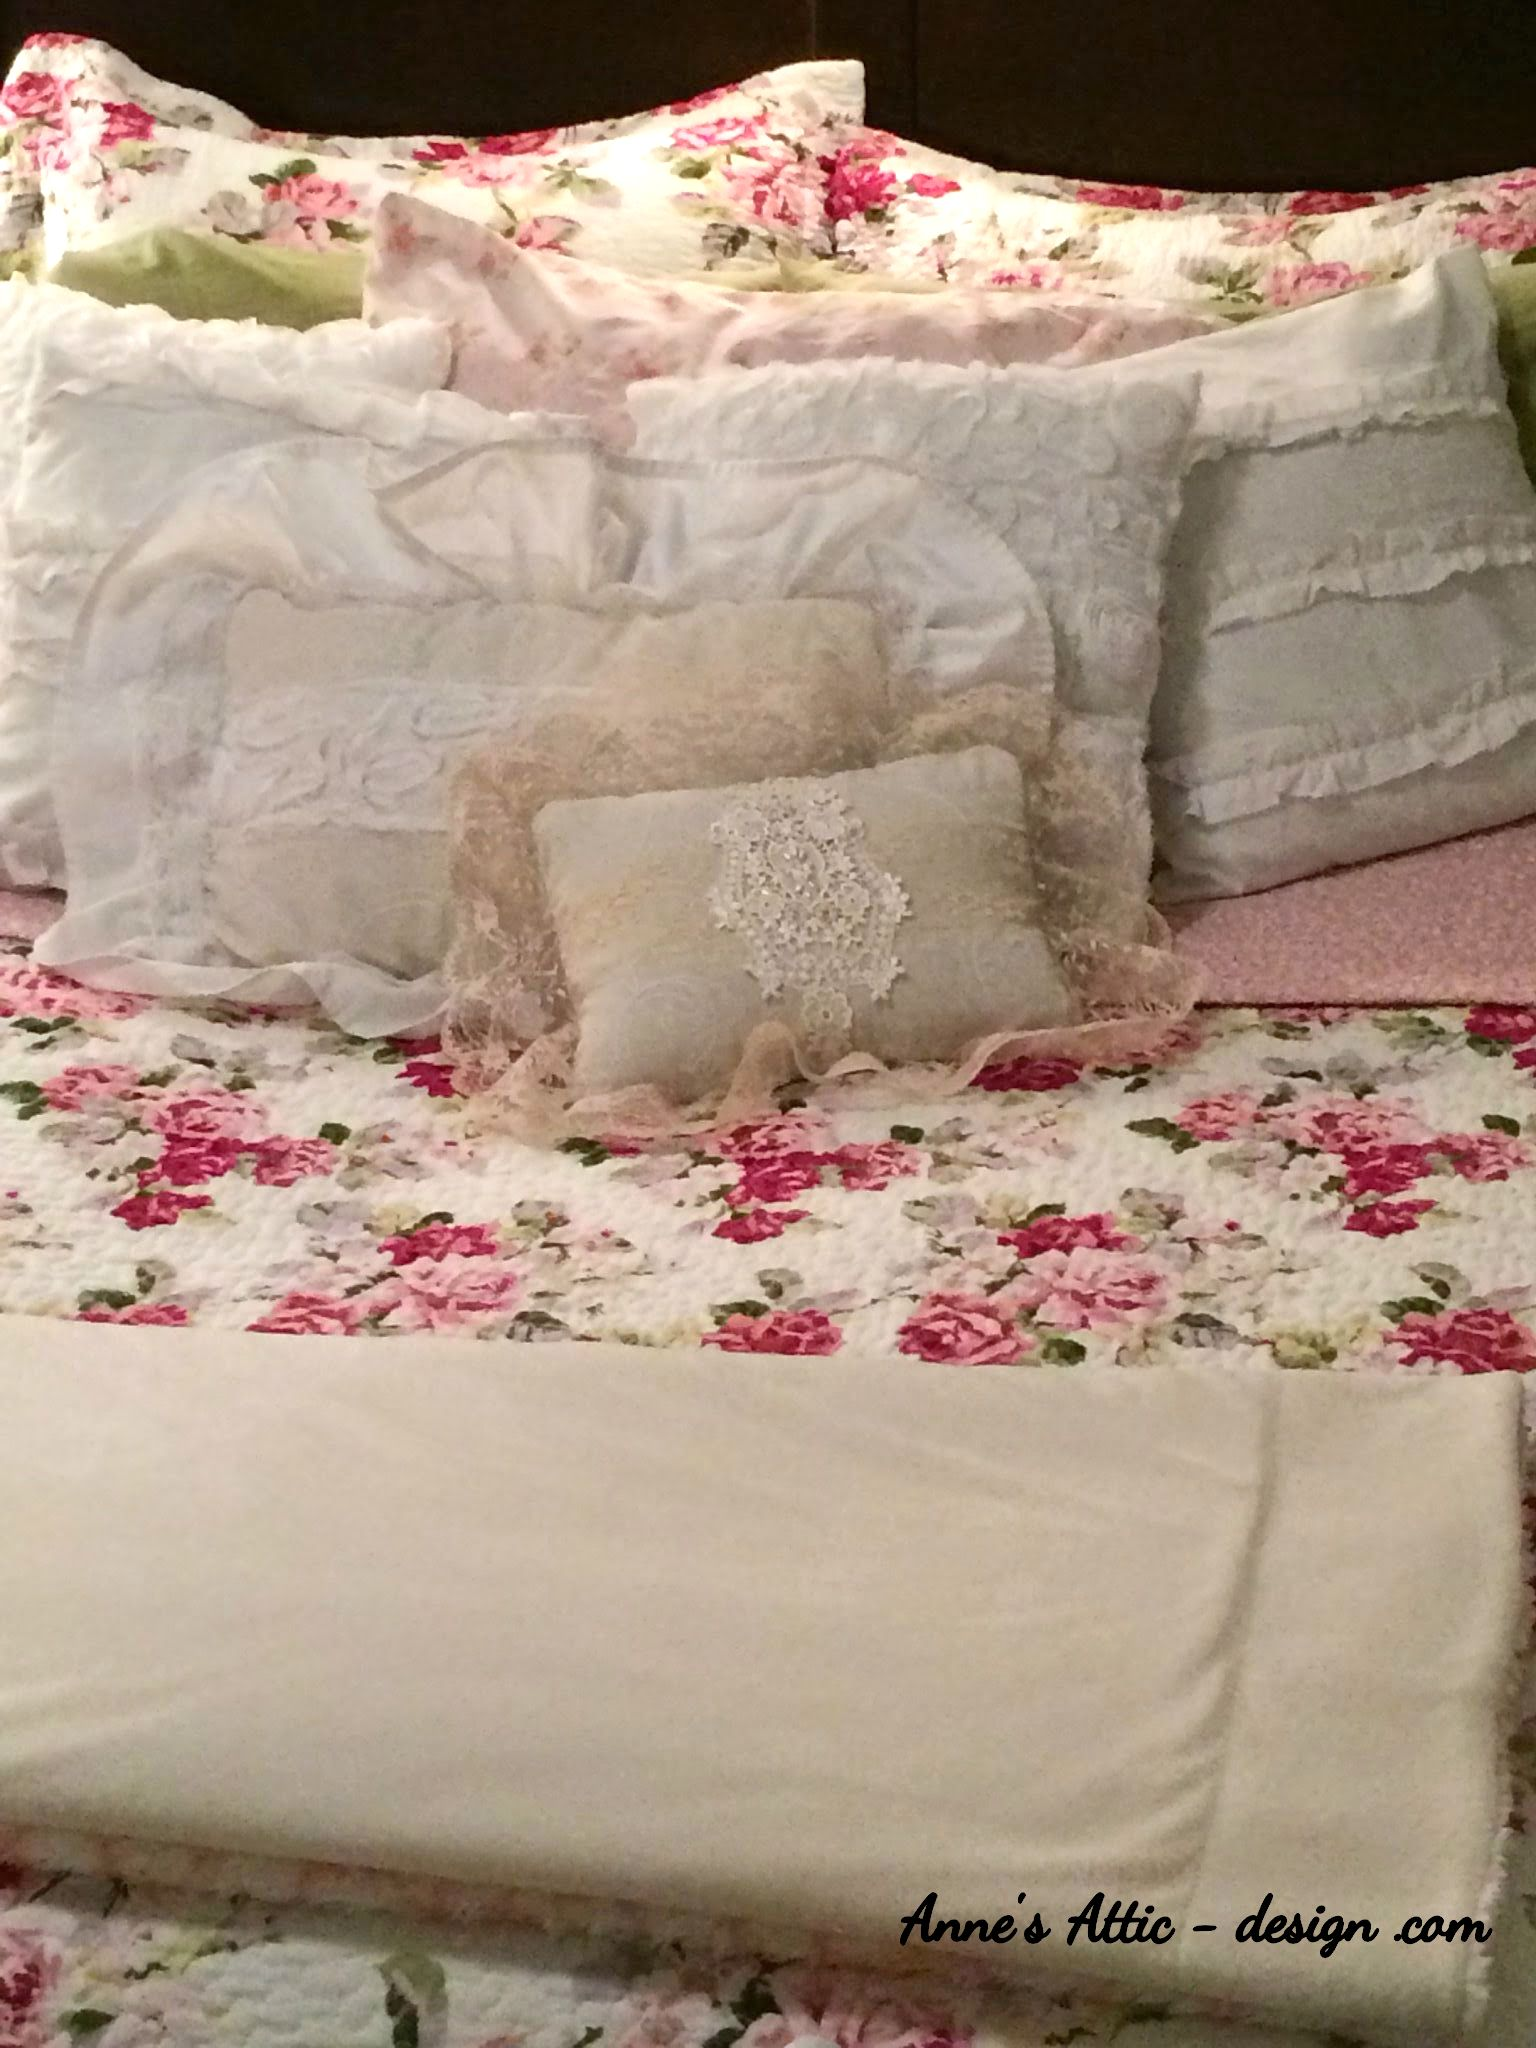 BeFunky_N bed pillows.jpg